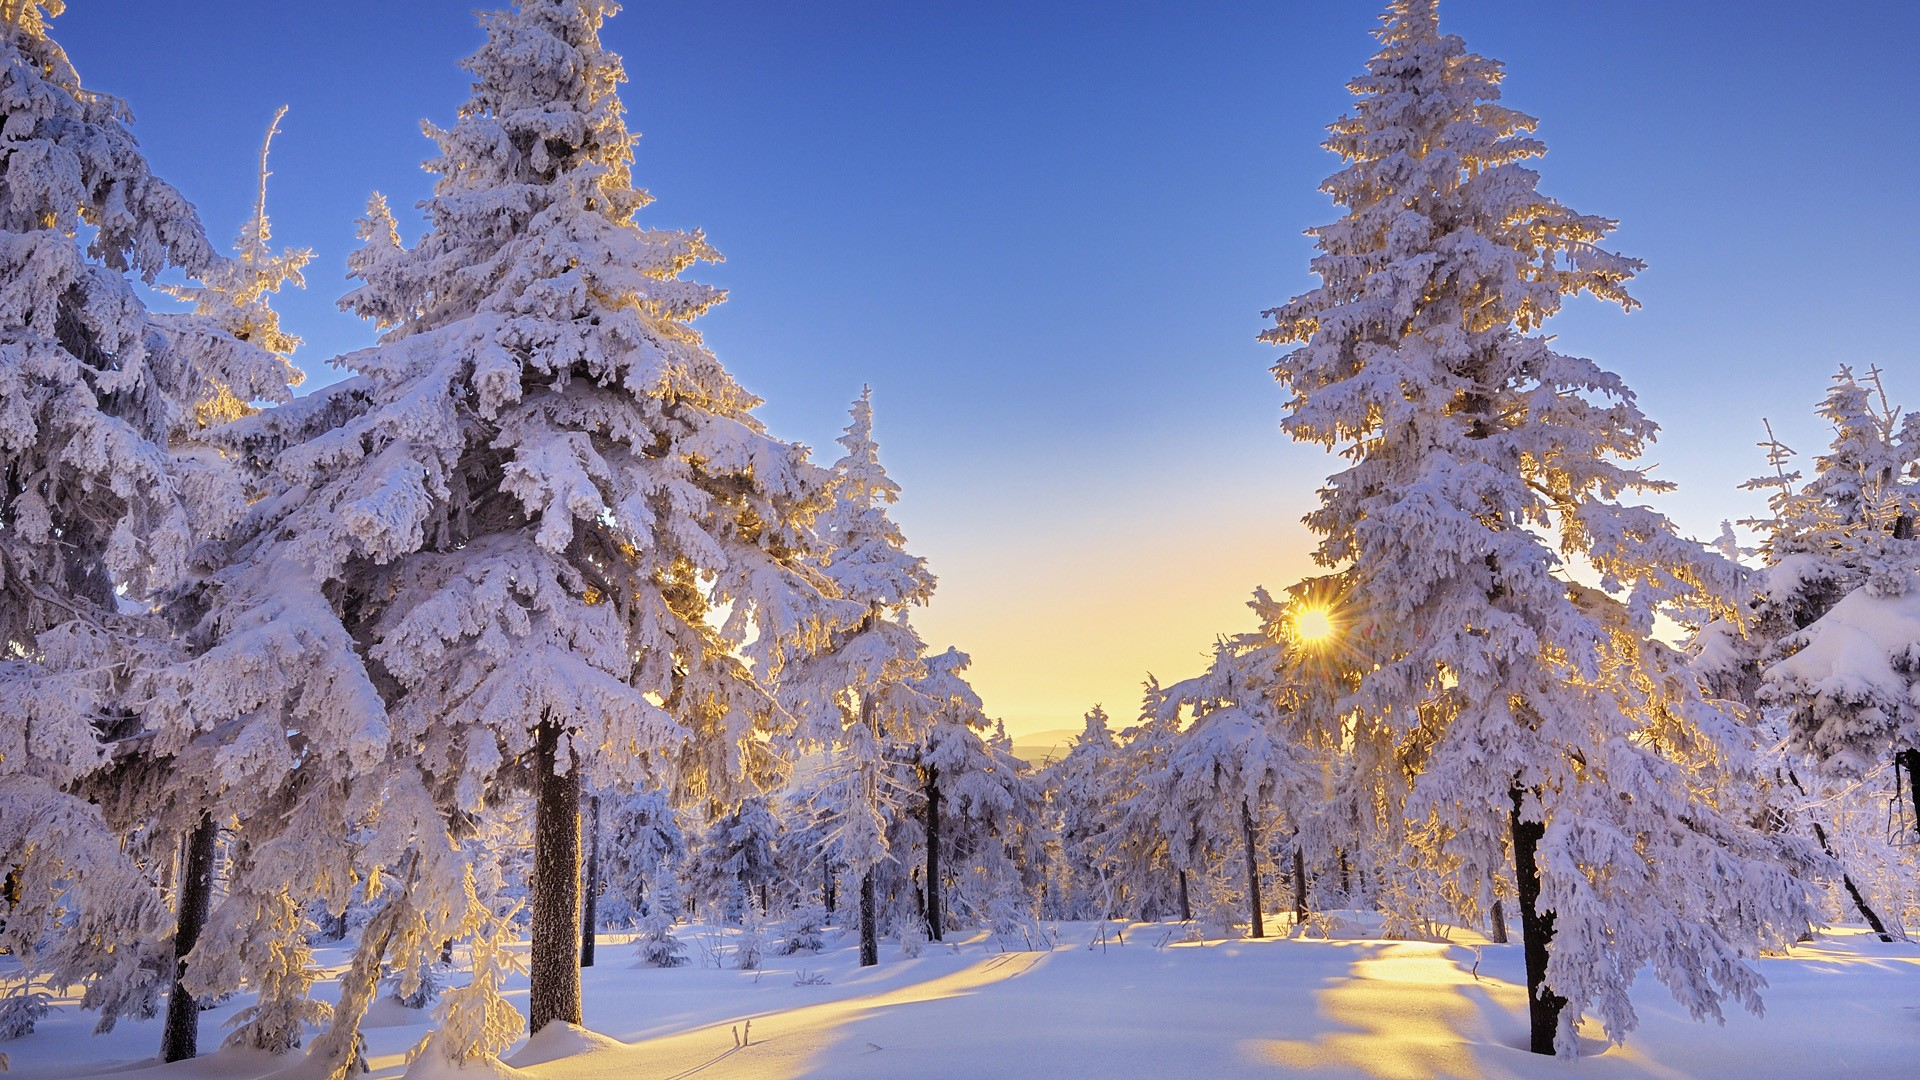 Winter snow pictures